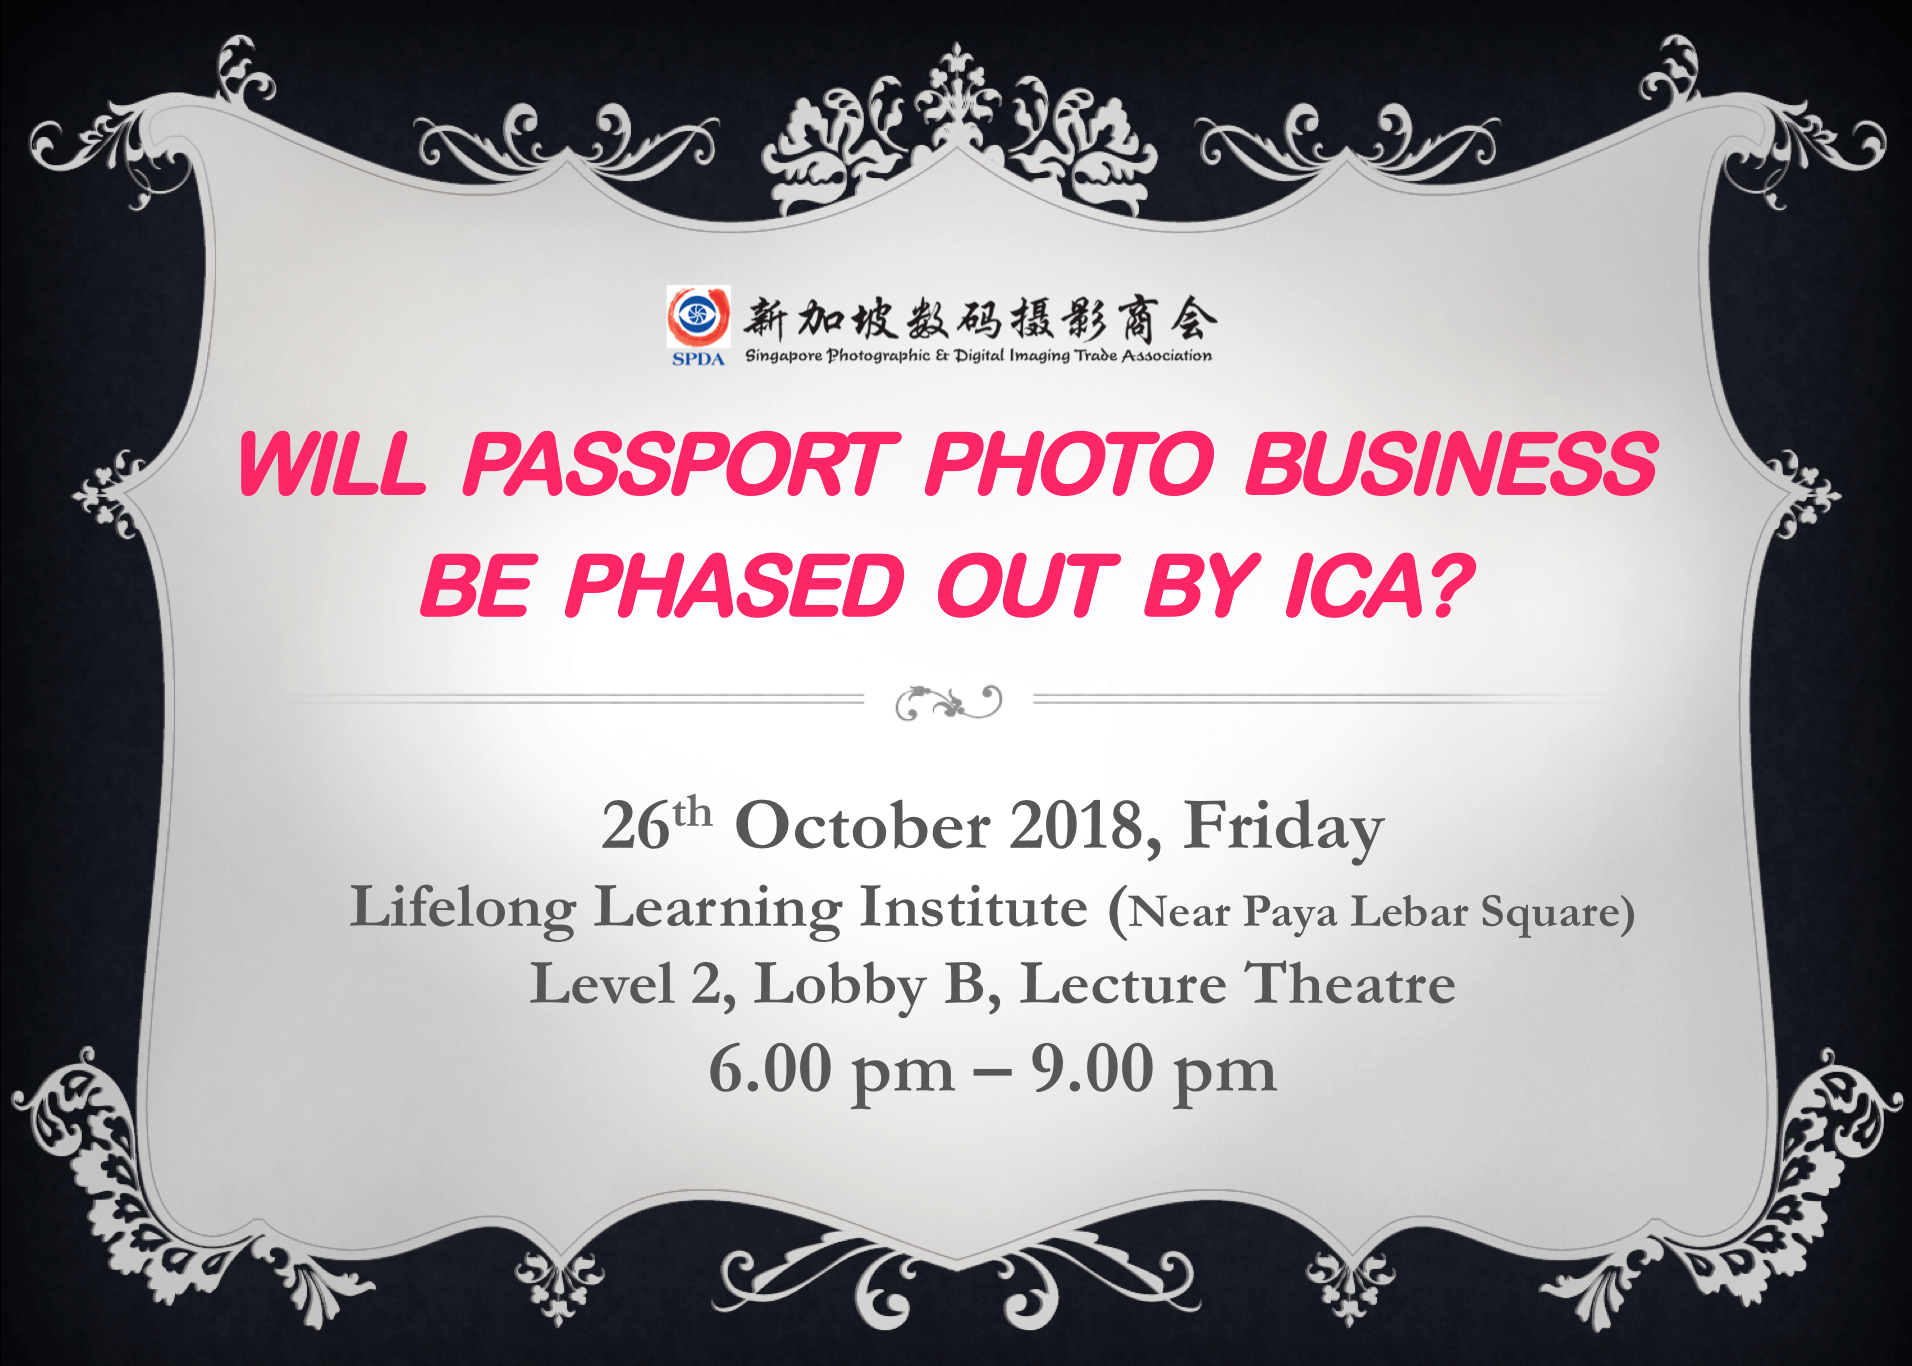 Will passport photo business be phased out by ICA